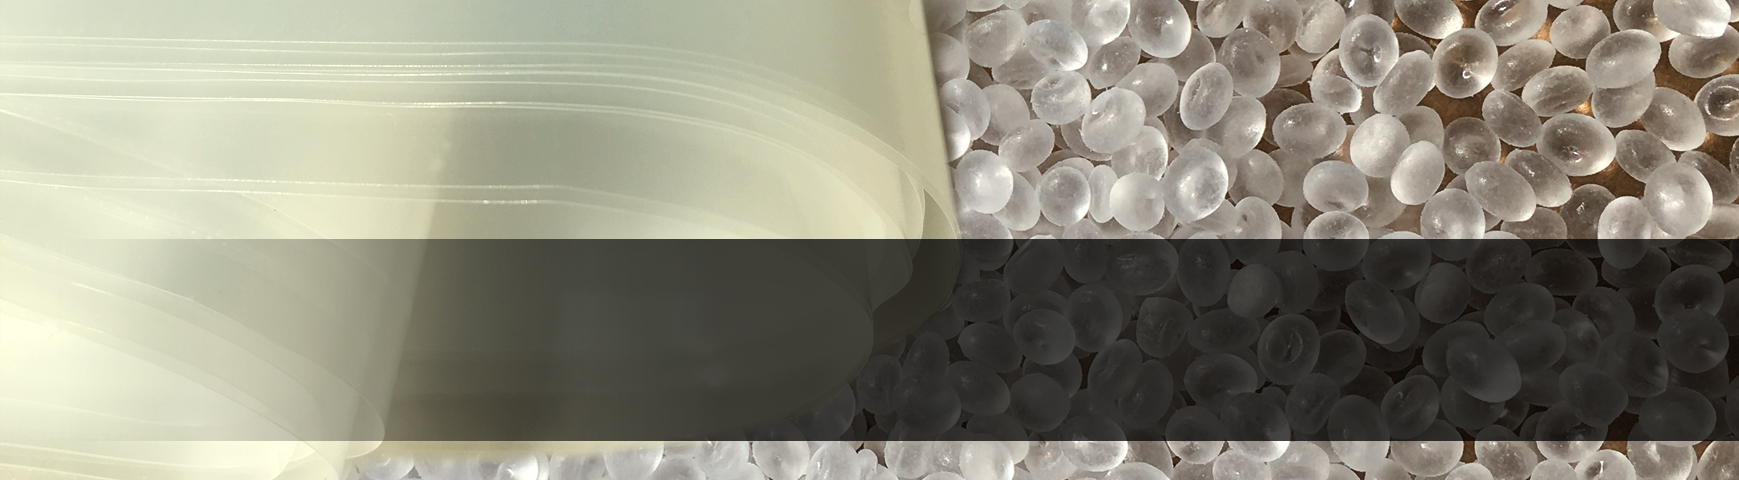 """Glamor of Plastic in Kao-Chia Kao-Chia create the higher quality plastic products-Acrylic sheet,GPPS sheet, PE film / bag. Excellent quality of Made in Taiwan and reasonable price make Kao-Chia """"Turn plastic into Gold""""."""